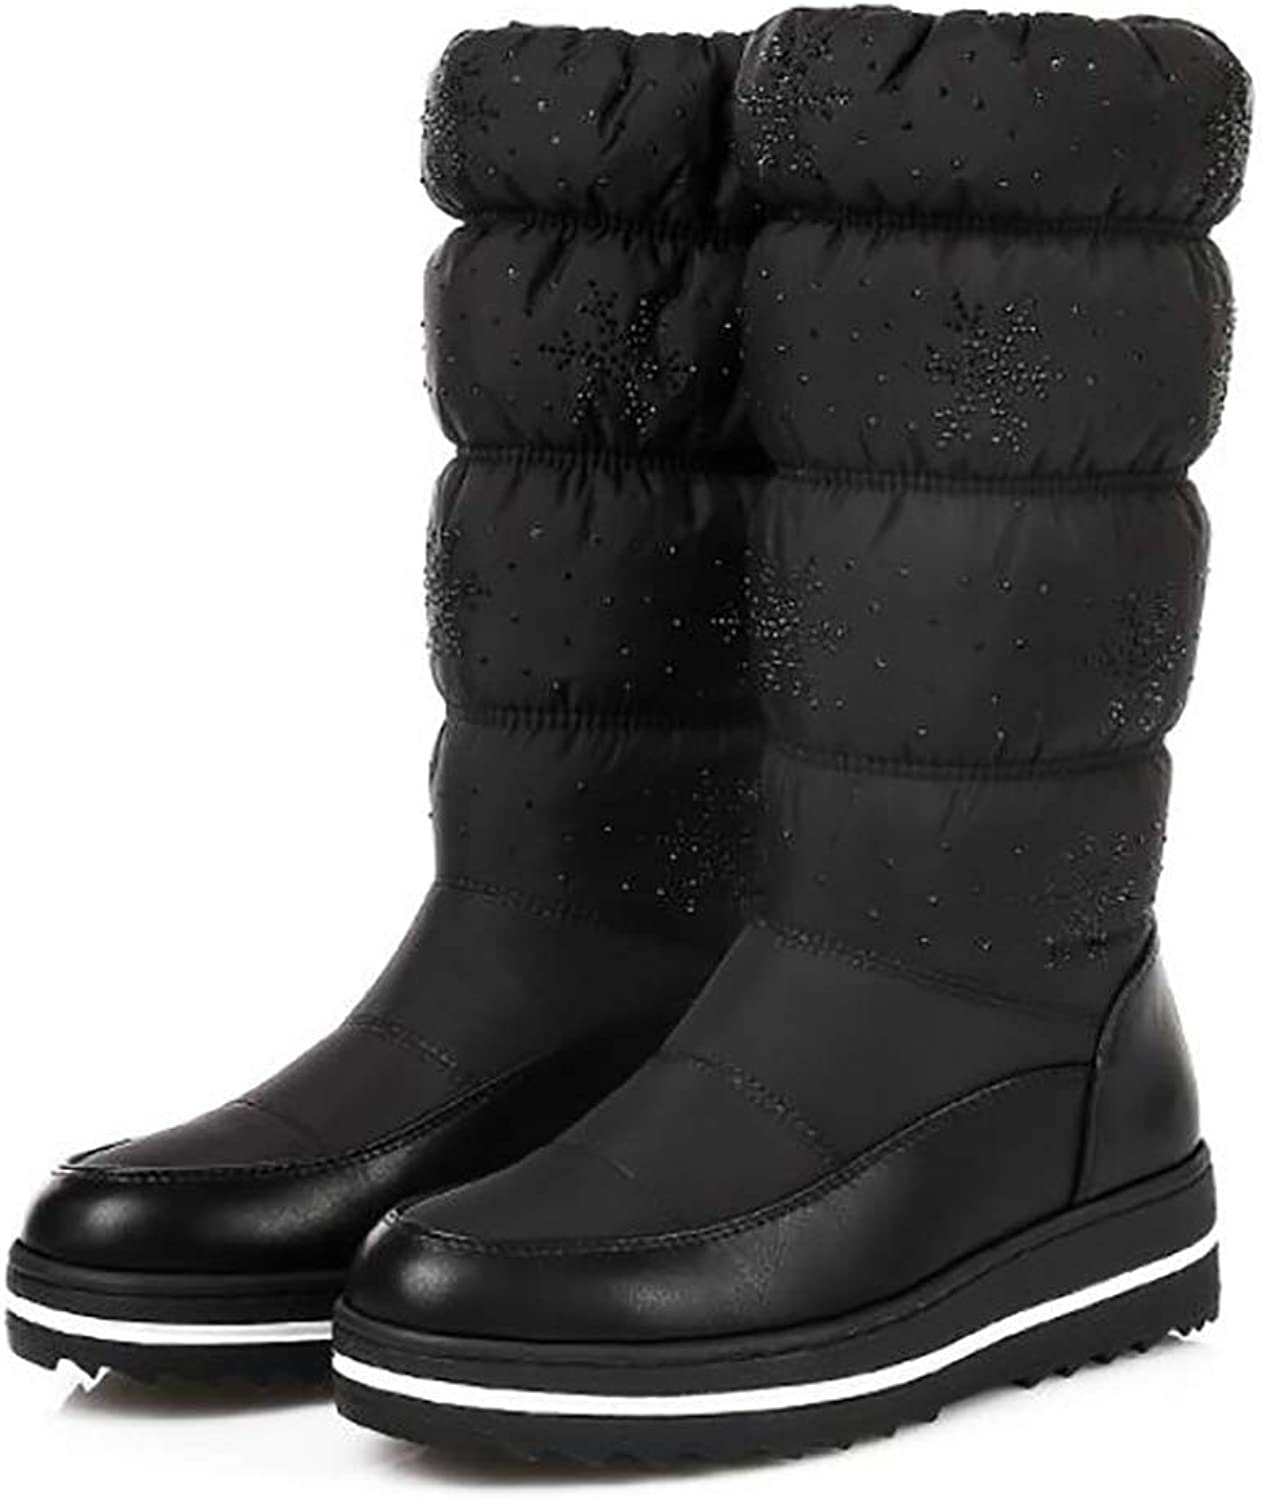 Women's Casual Snow Boots Winter Keep Warm Thicken Cotton Flat shoes Wedges Platform Mid-Calf Boots,Black,36